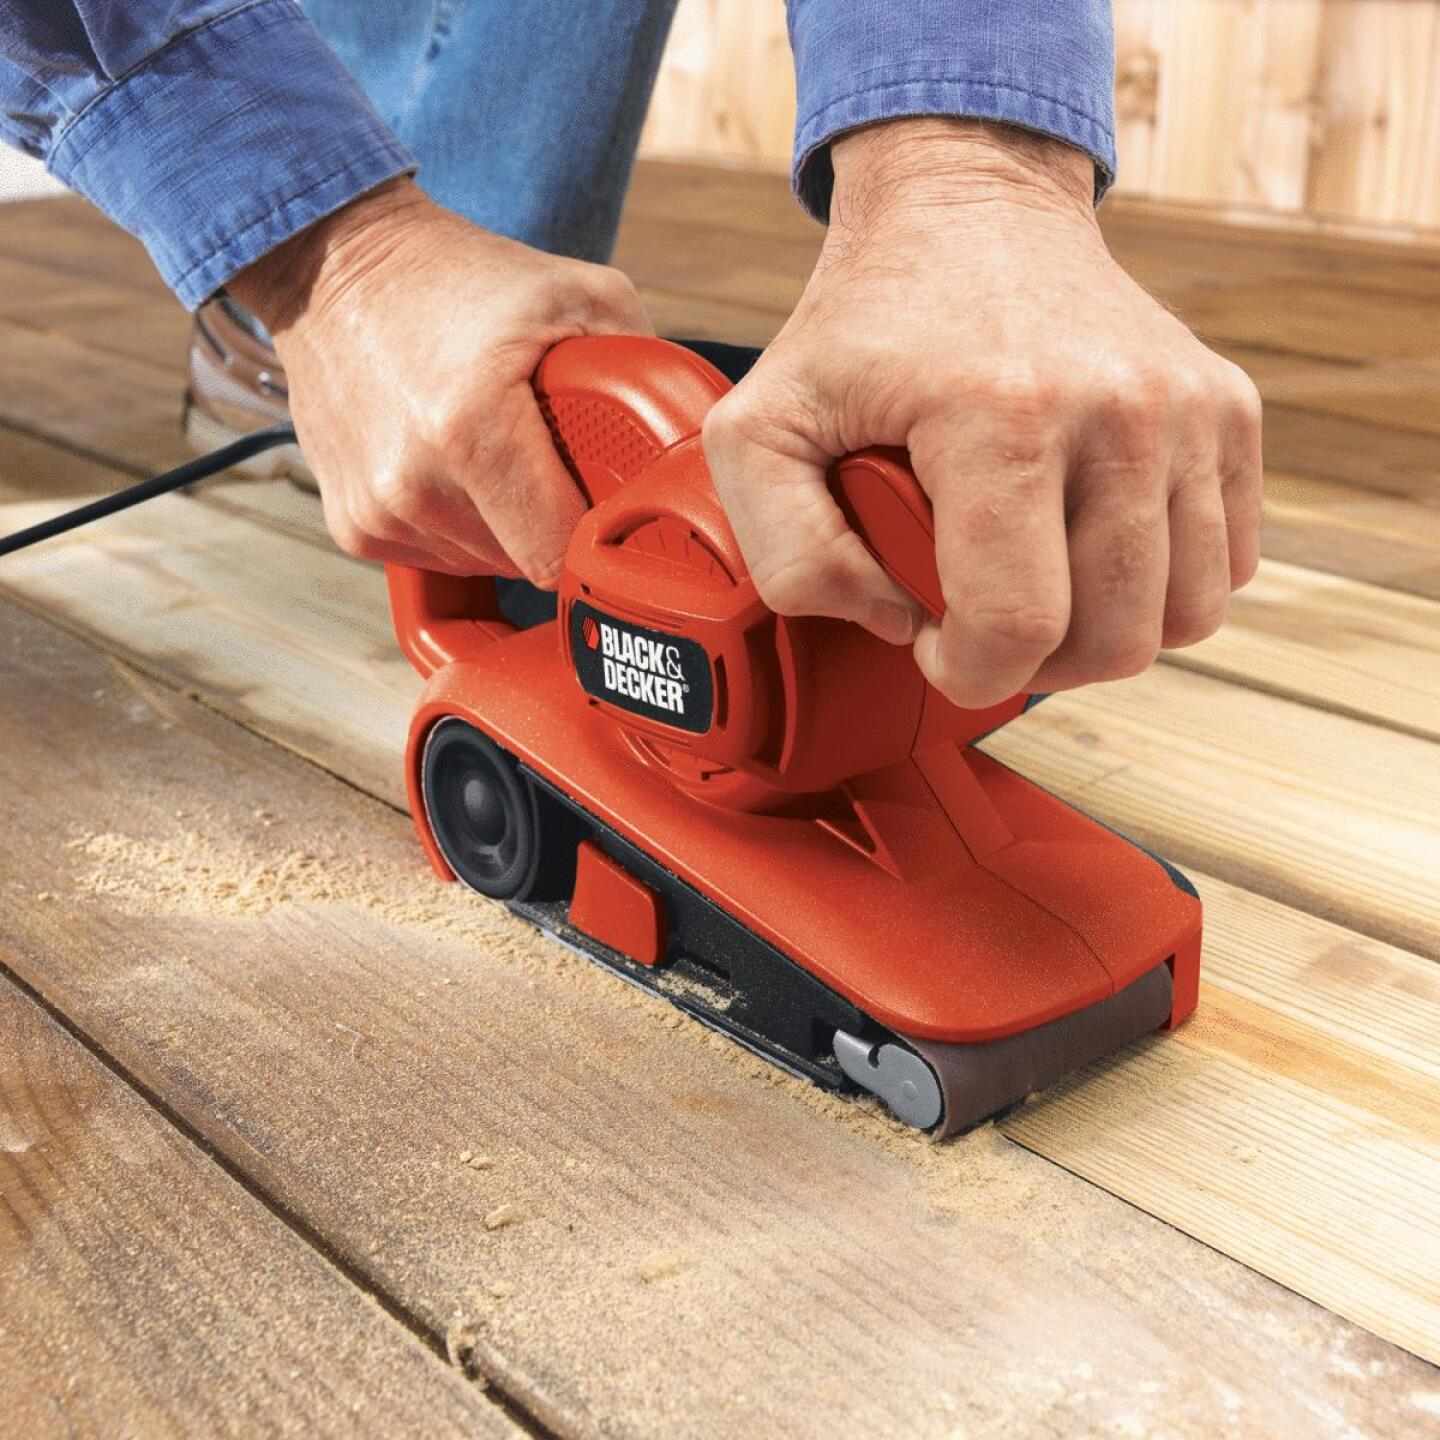 Black & Decker 3 In. x 18 In. Compact Belt Sander Image 3